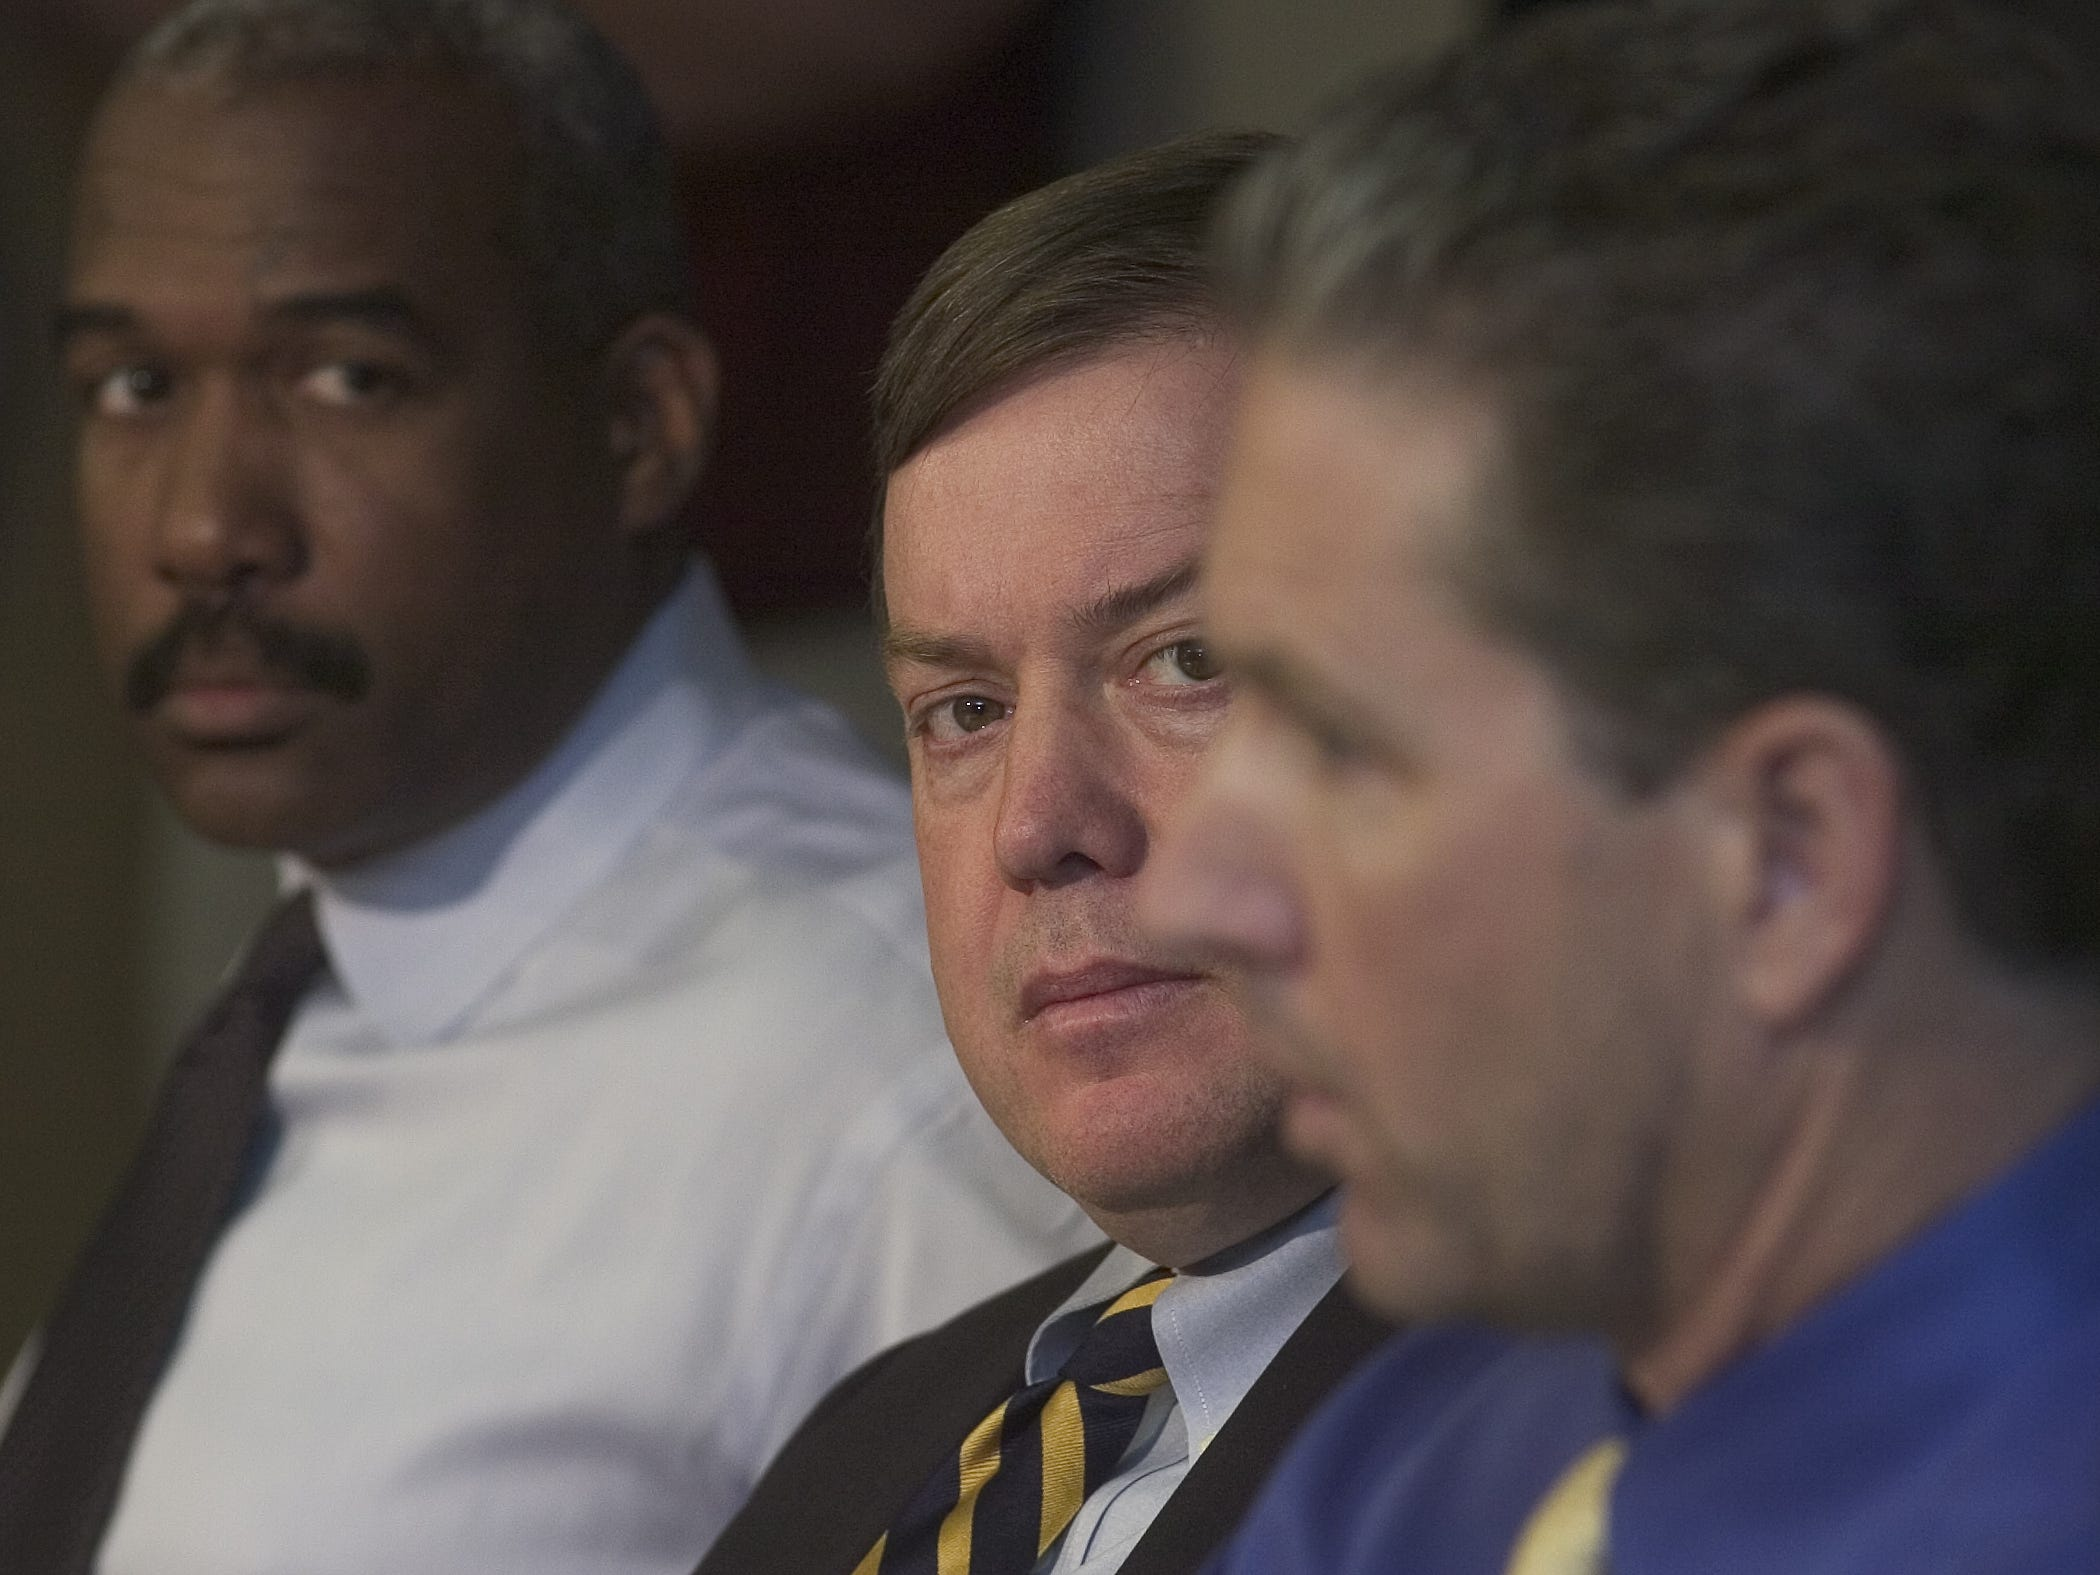 Michael Crow (center) watches as former ASU head football coach Dirk Koetter (right) answers questions about the shooting of Brandon Falkner during a 2004 press conference.